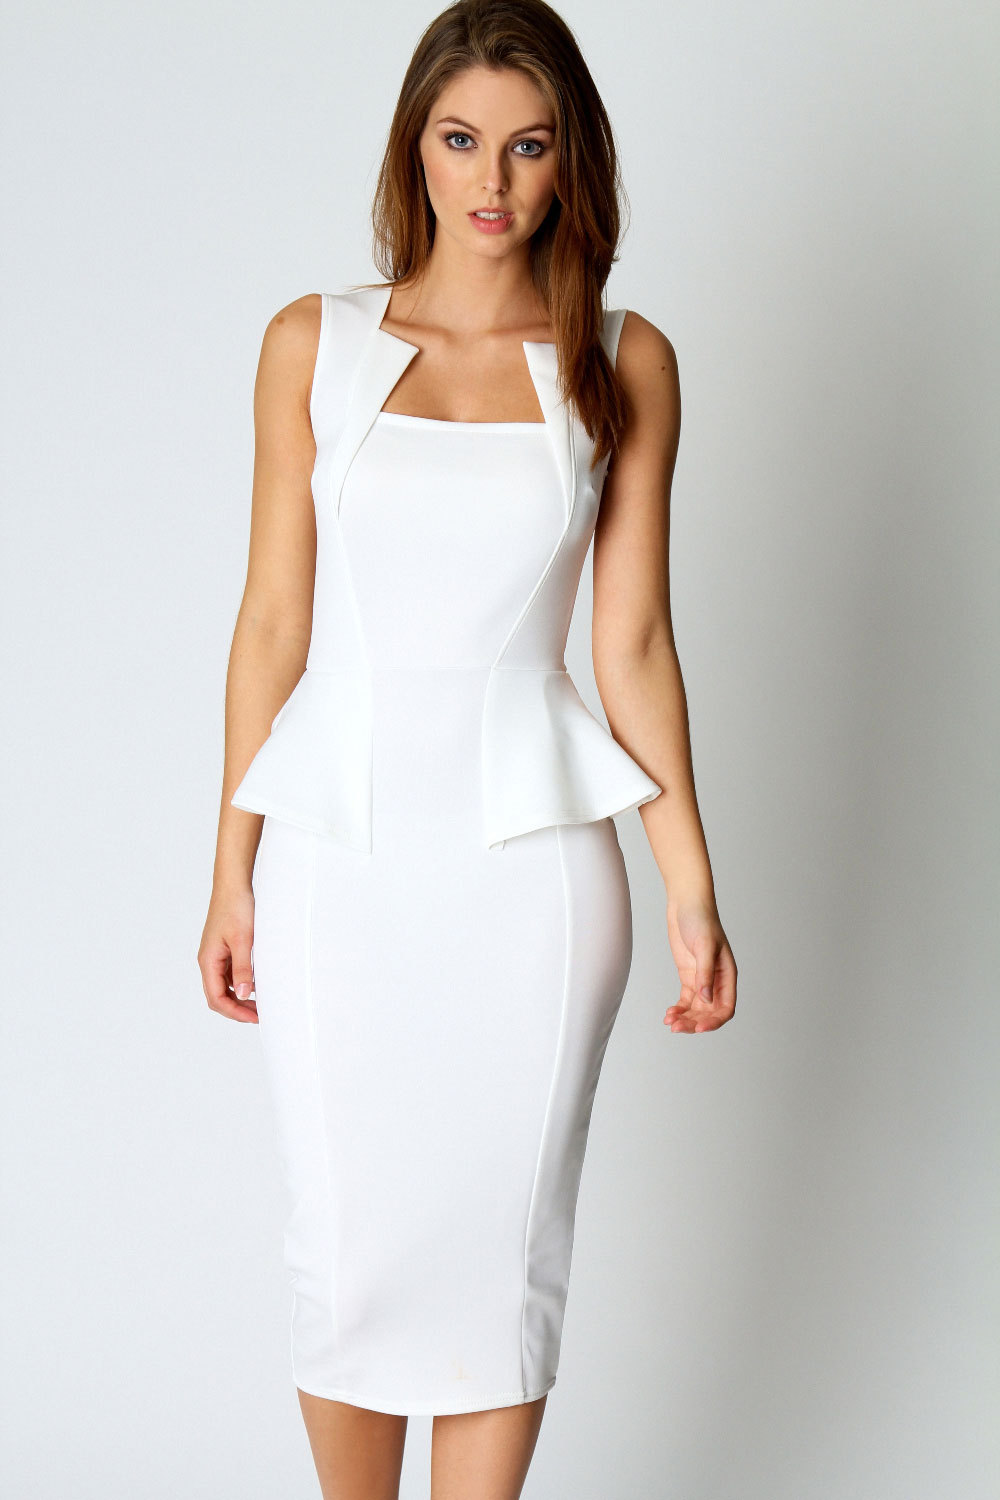 Sign of purity: white dresses for women